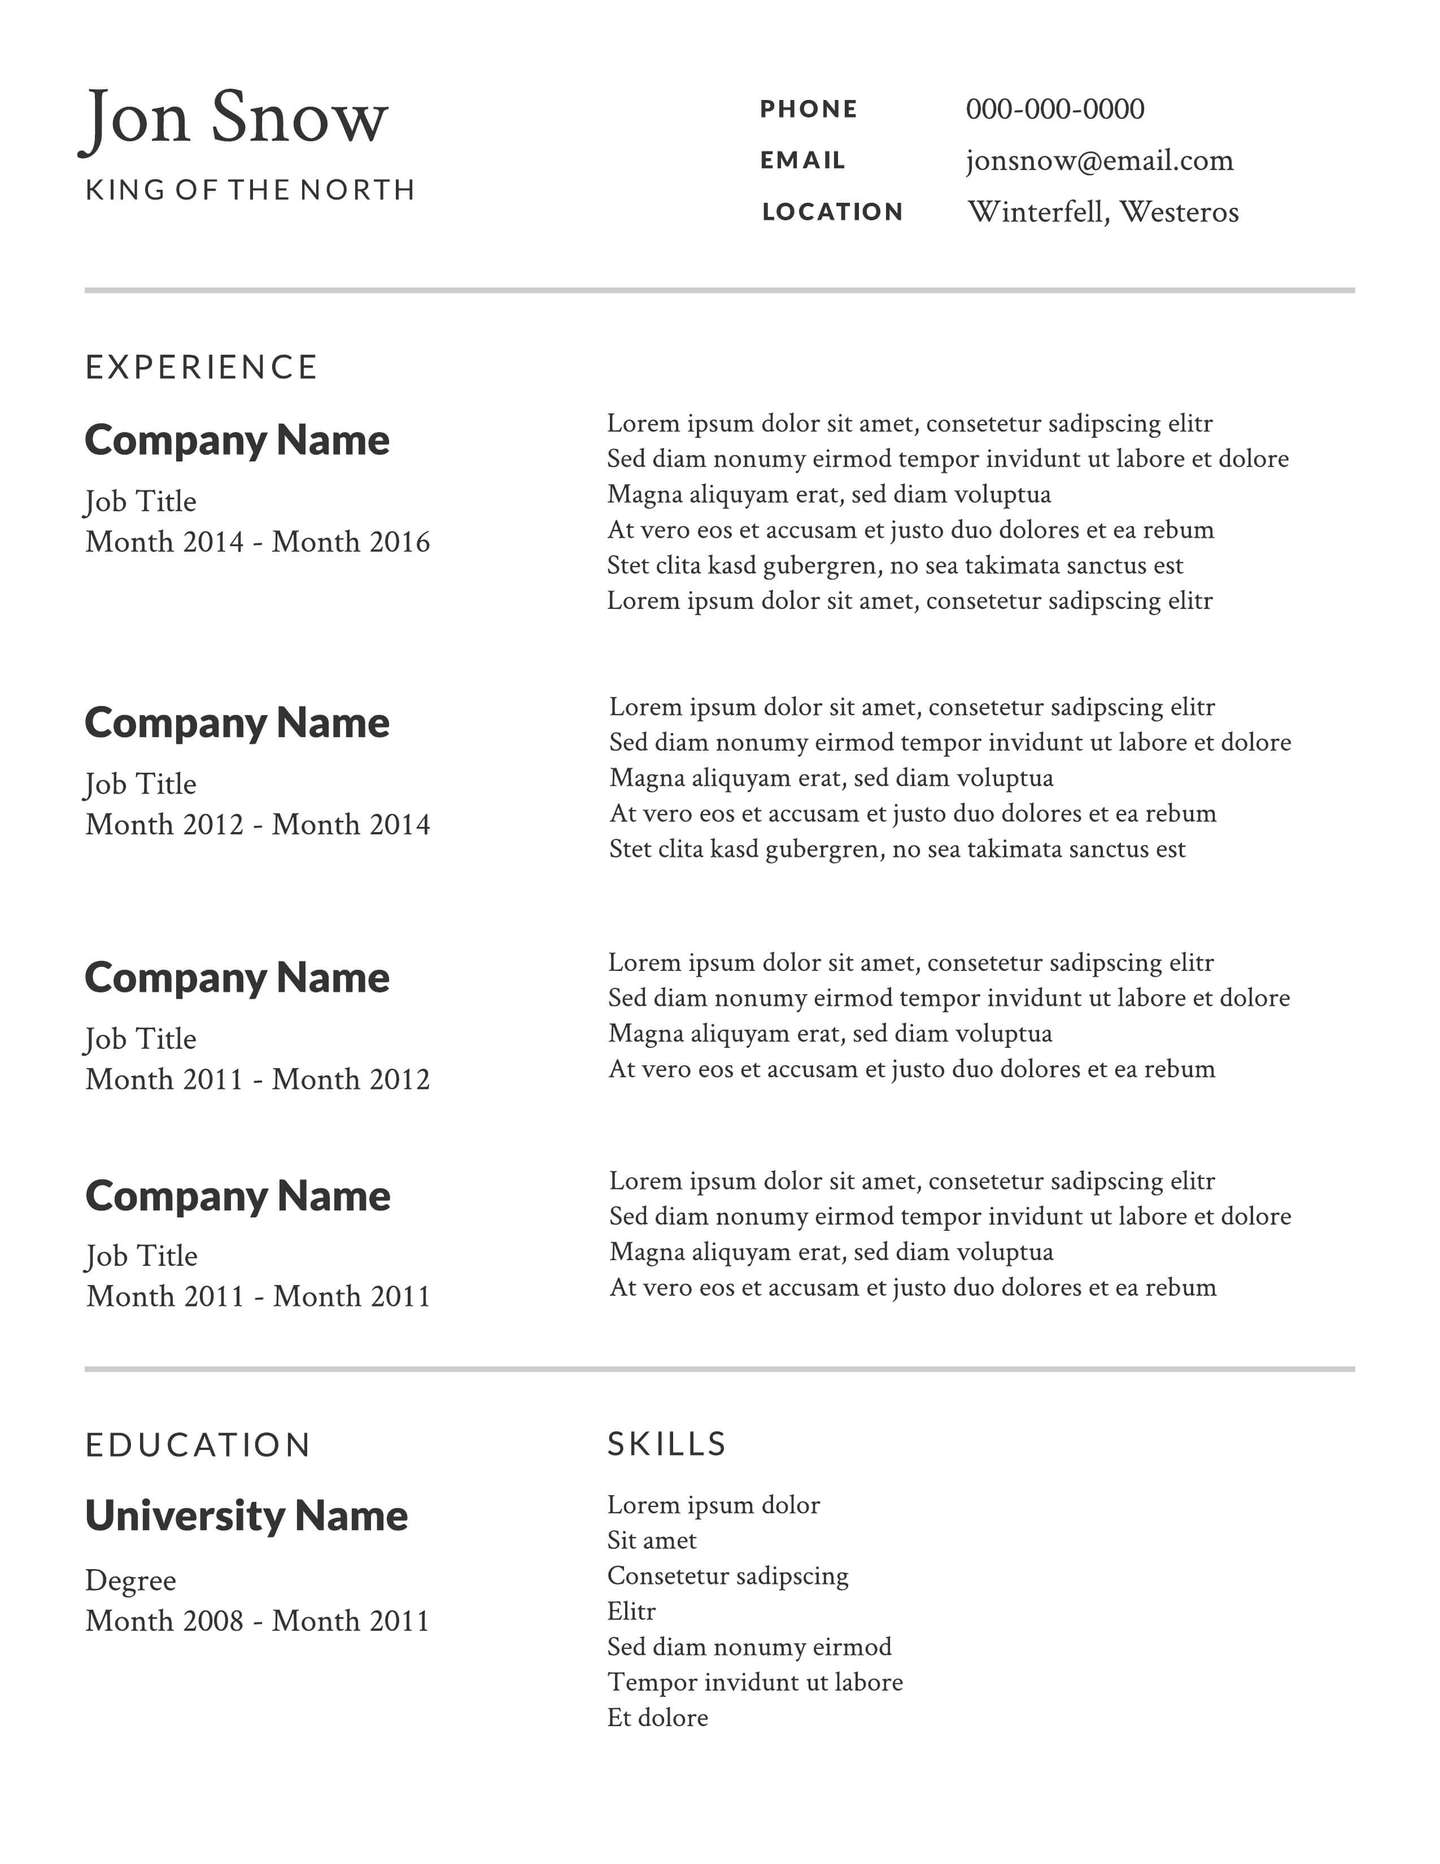 Free Resume Template Resume Professional2x free resume template|wikiresume.com